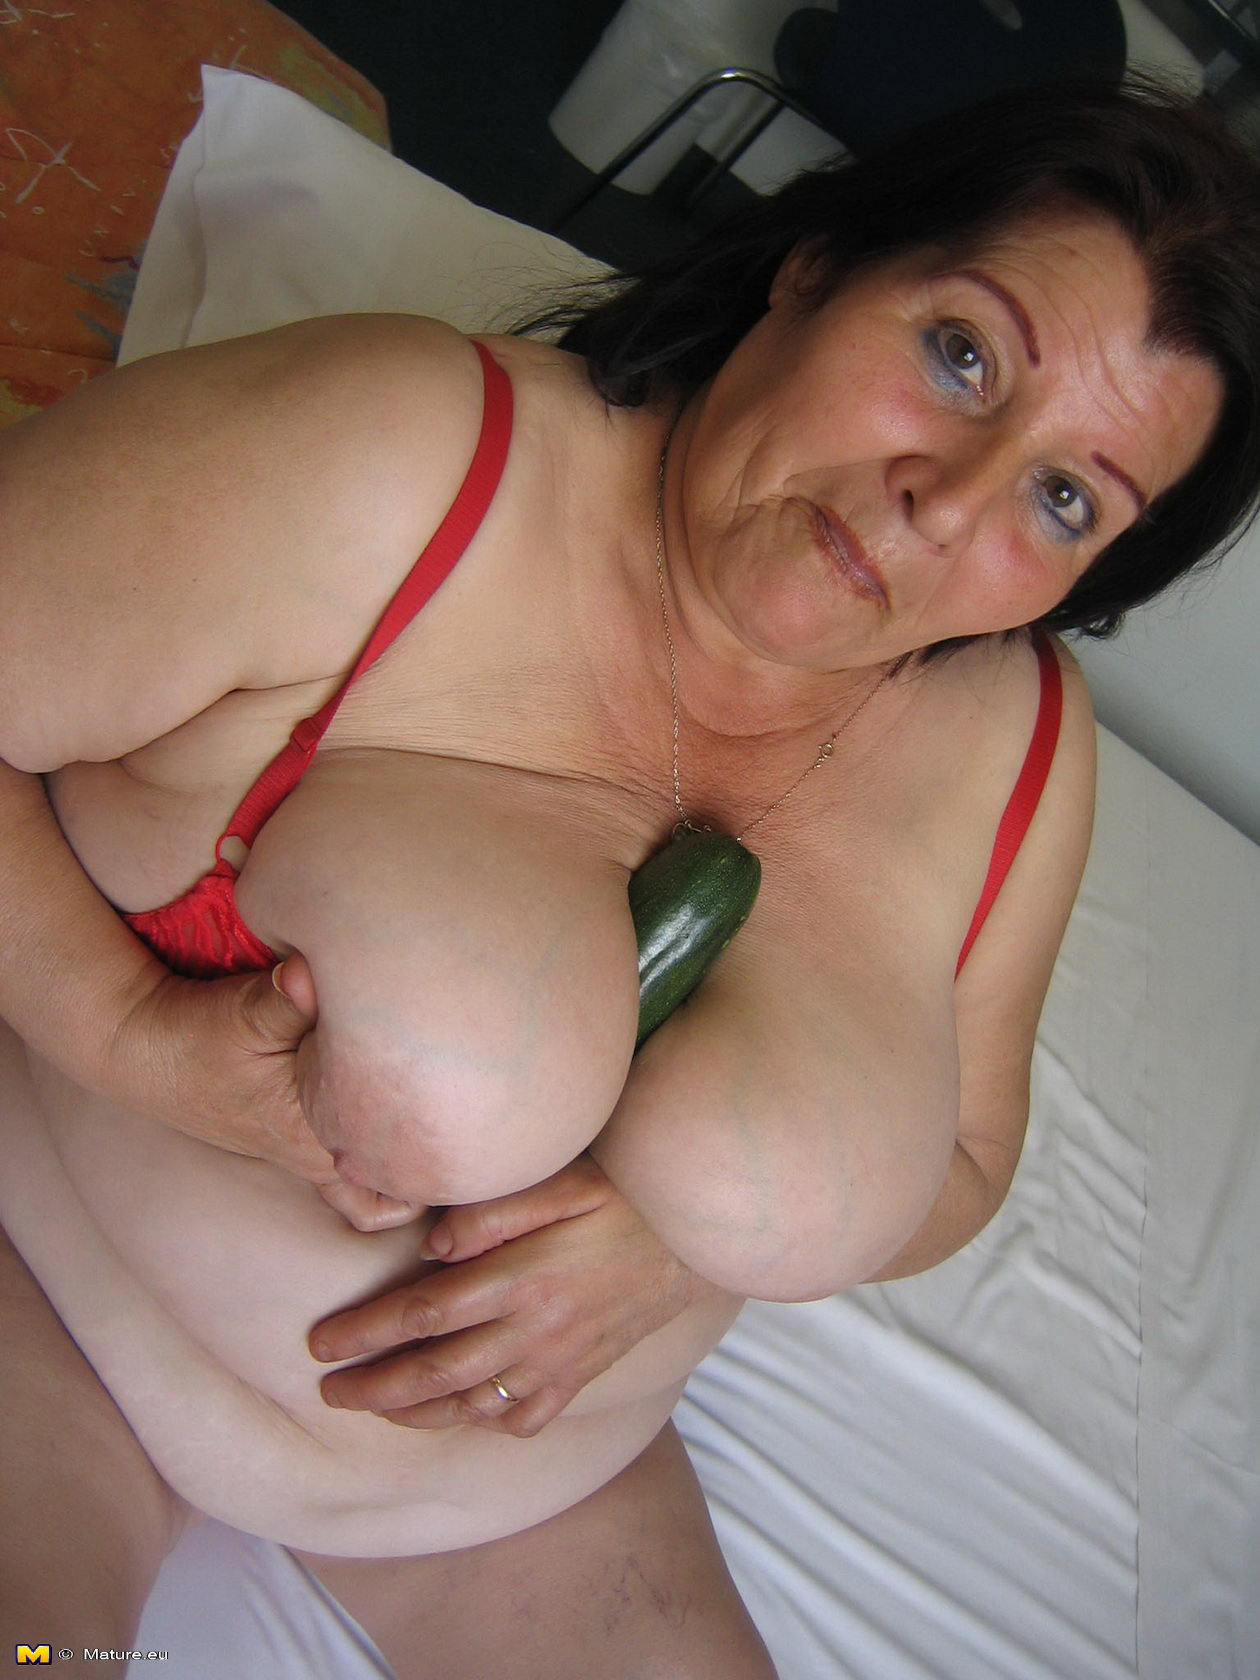 Big titted mature slut playing with herself can